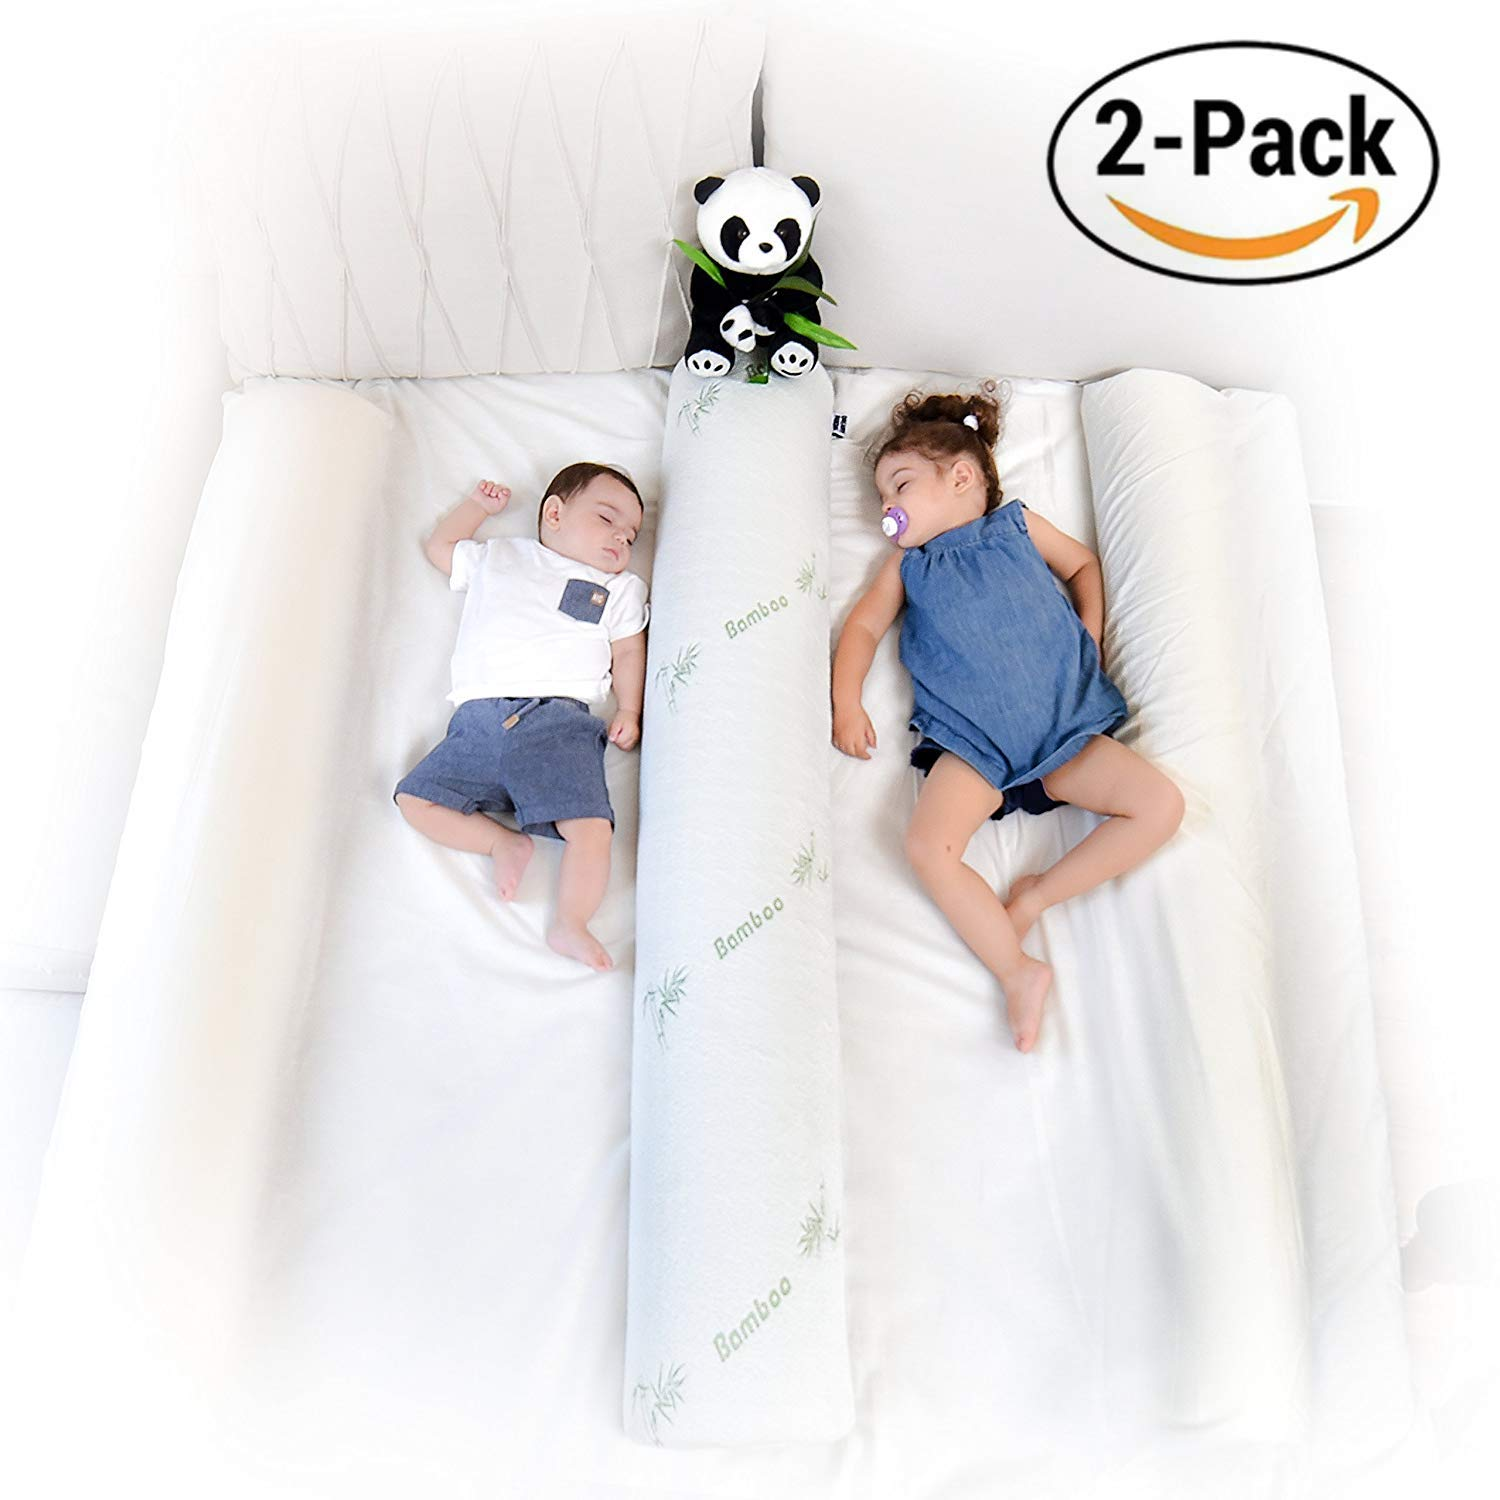 DreamyPanda Toddler Bed Rail Bumper/Foam Guard for Bed - Large - Side Rail with Bamboo Cover - Pillow Pad for Toddlers, Kids [2-Pack - White Bamboo] by DREAMYPANDA (Image #1)